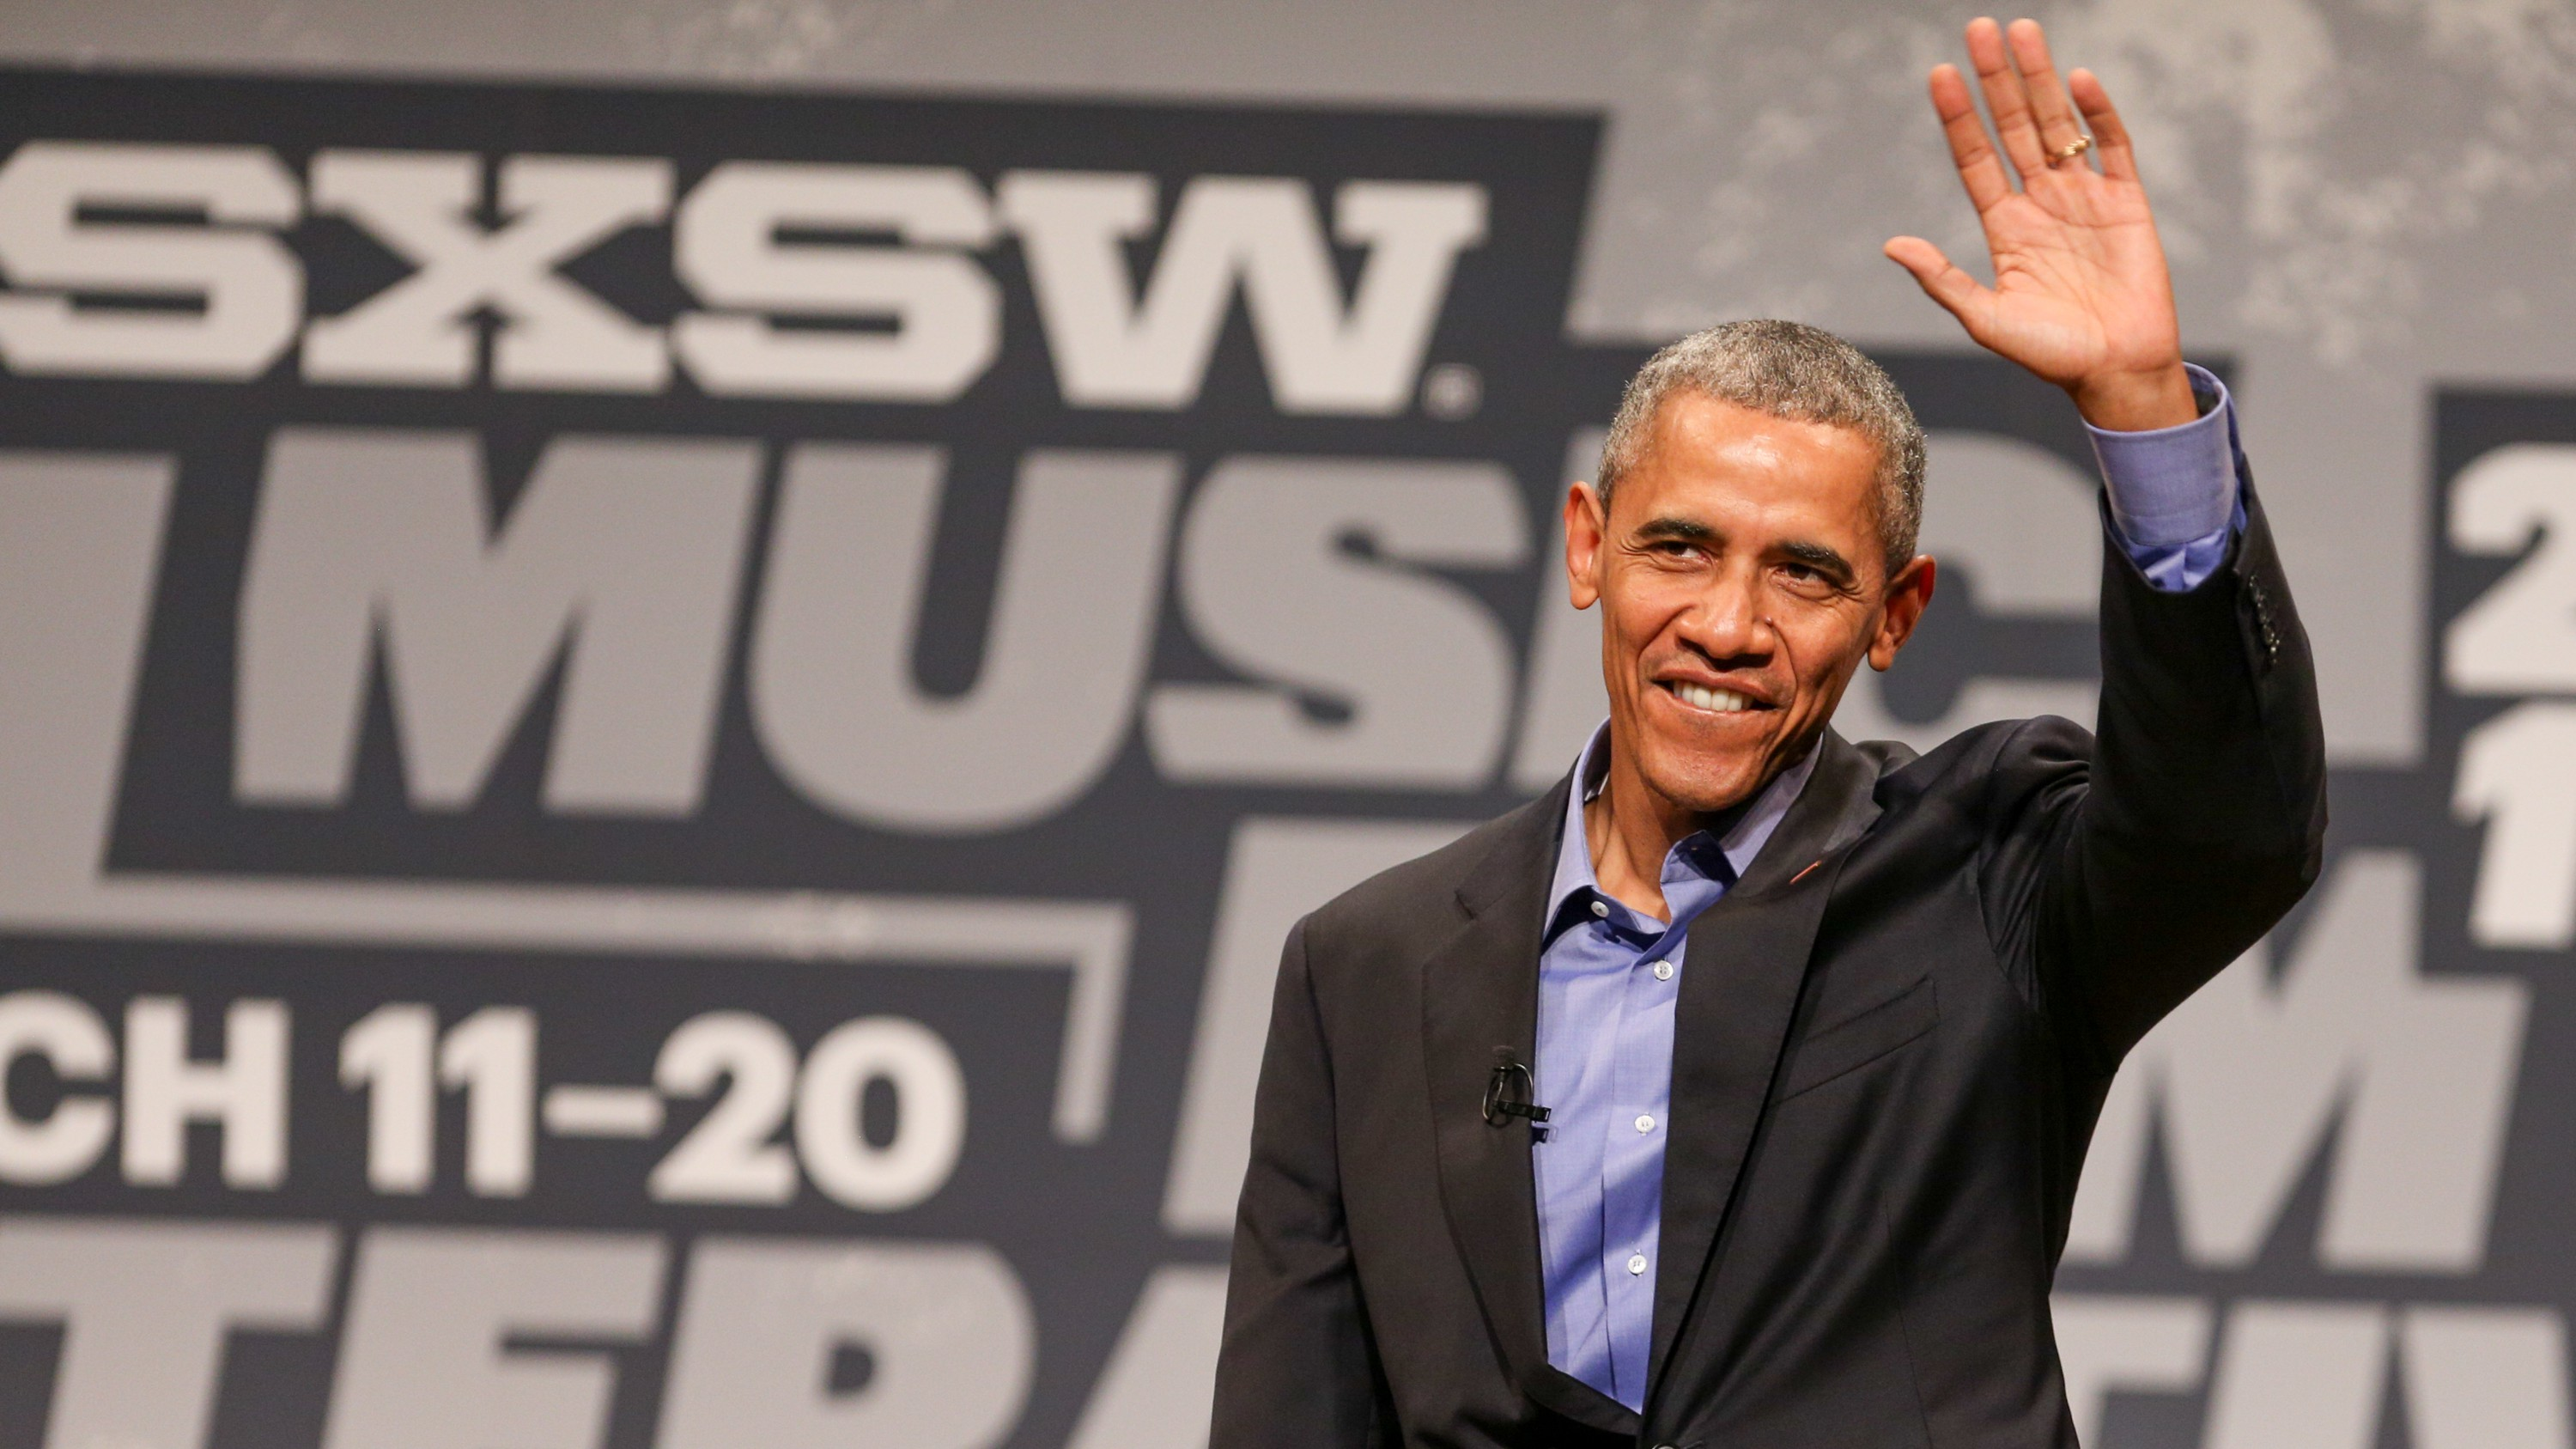 President Barack Obama speaks during the opening day of South By Southwest at the Long Center for the Performing Arts on Friday, March 11, 2016, in Austin, TX.